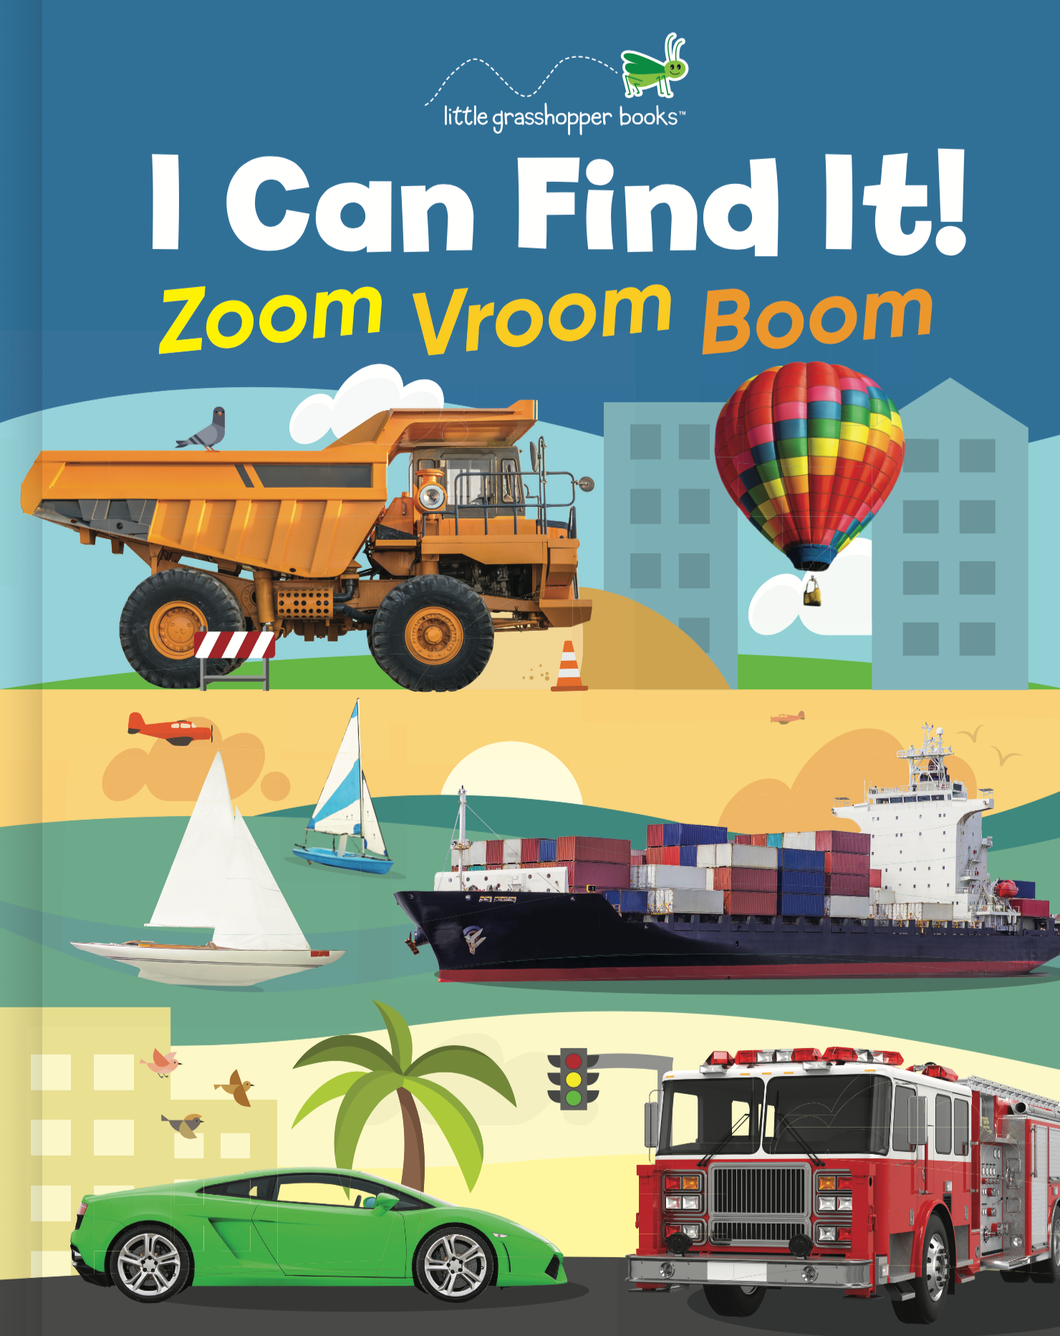 I Can Find It! Zoom Vroom Boom